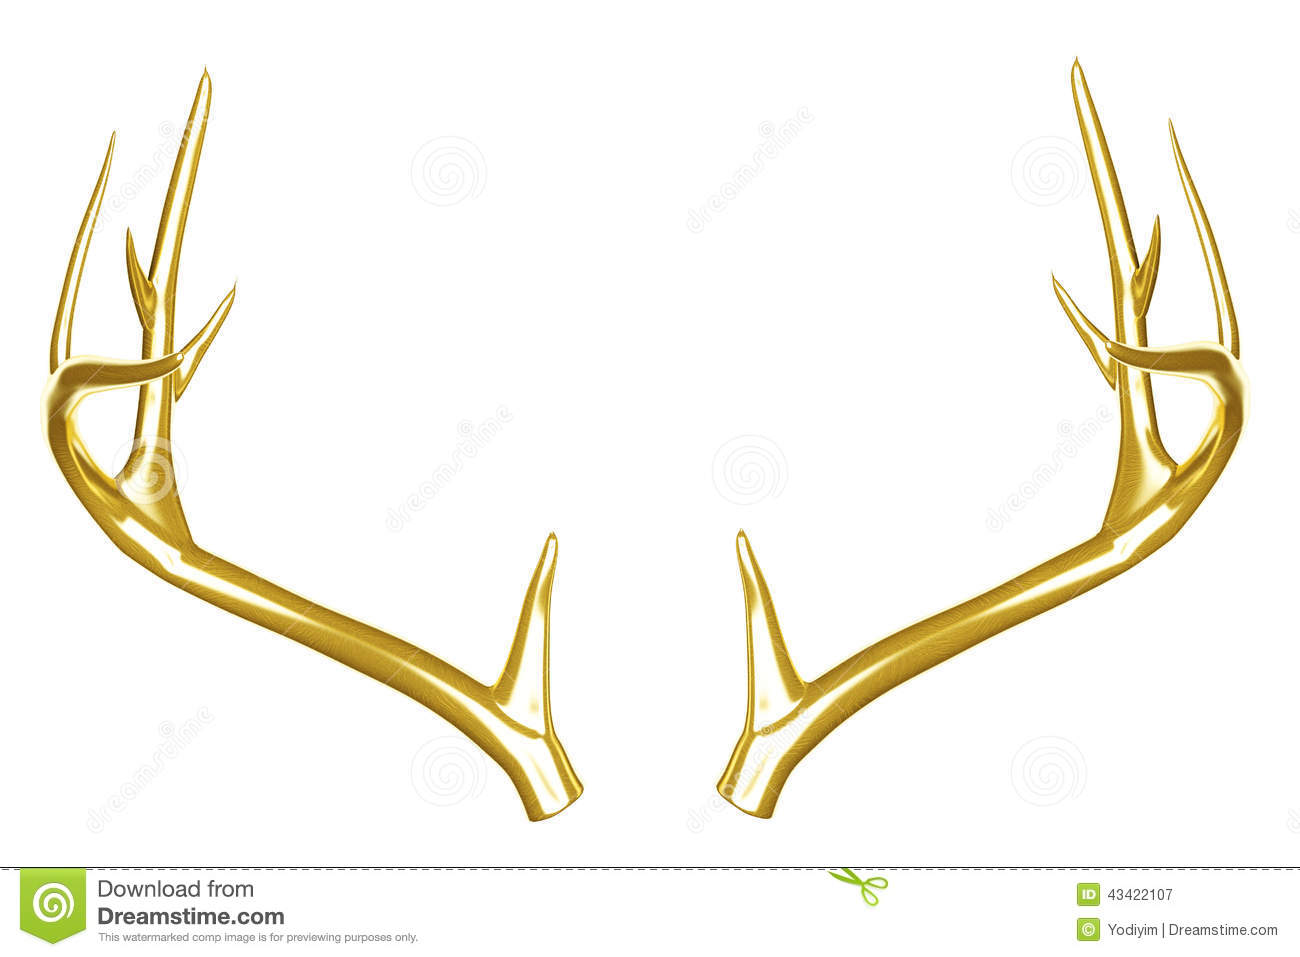 Golden Deer Antlers. Stock Photo - Image: 43422107